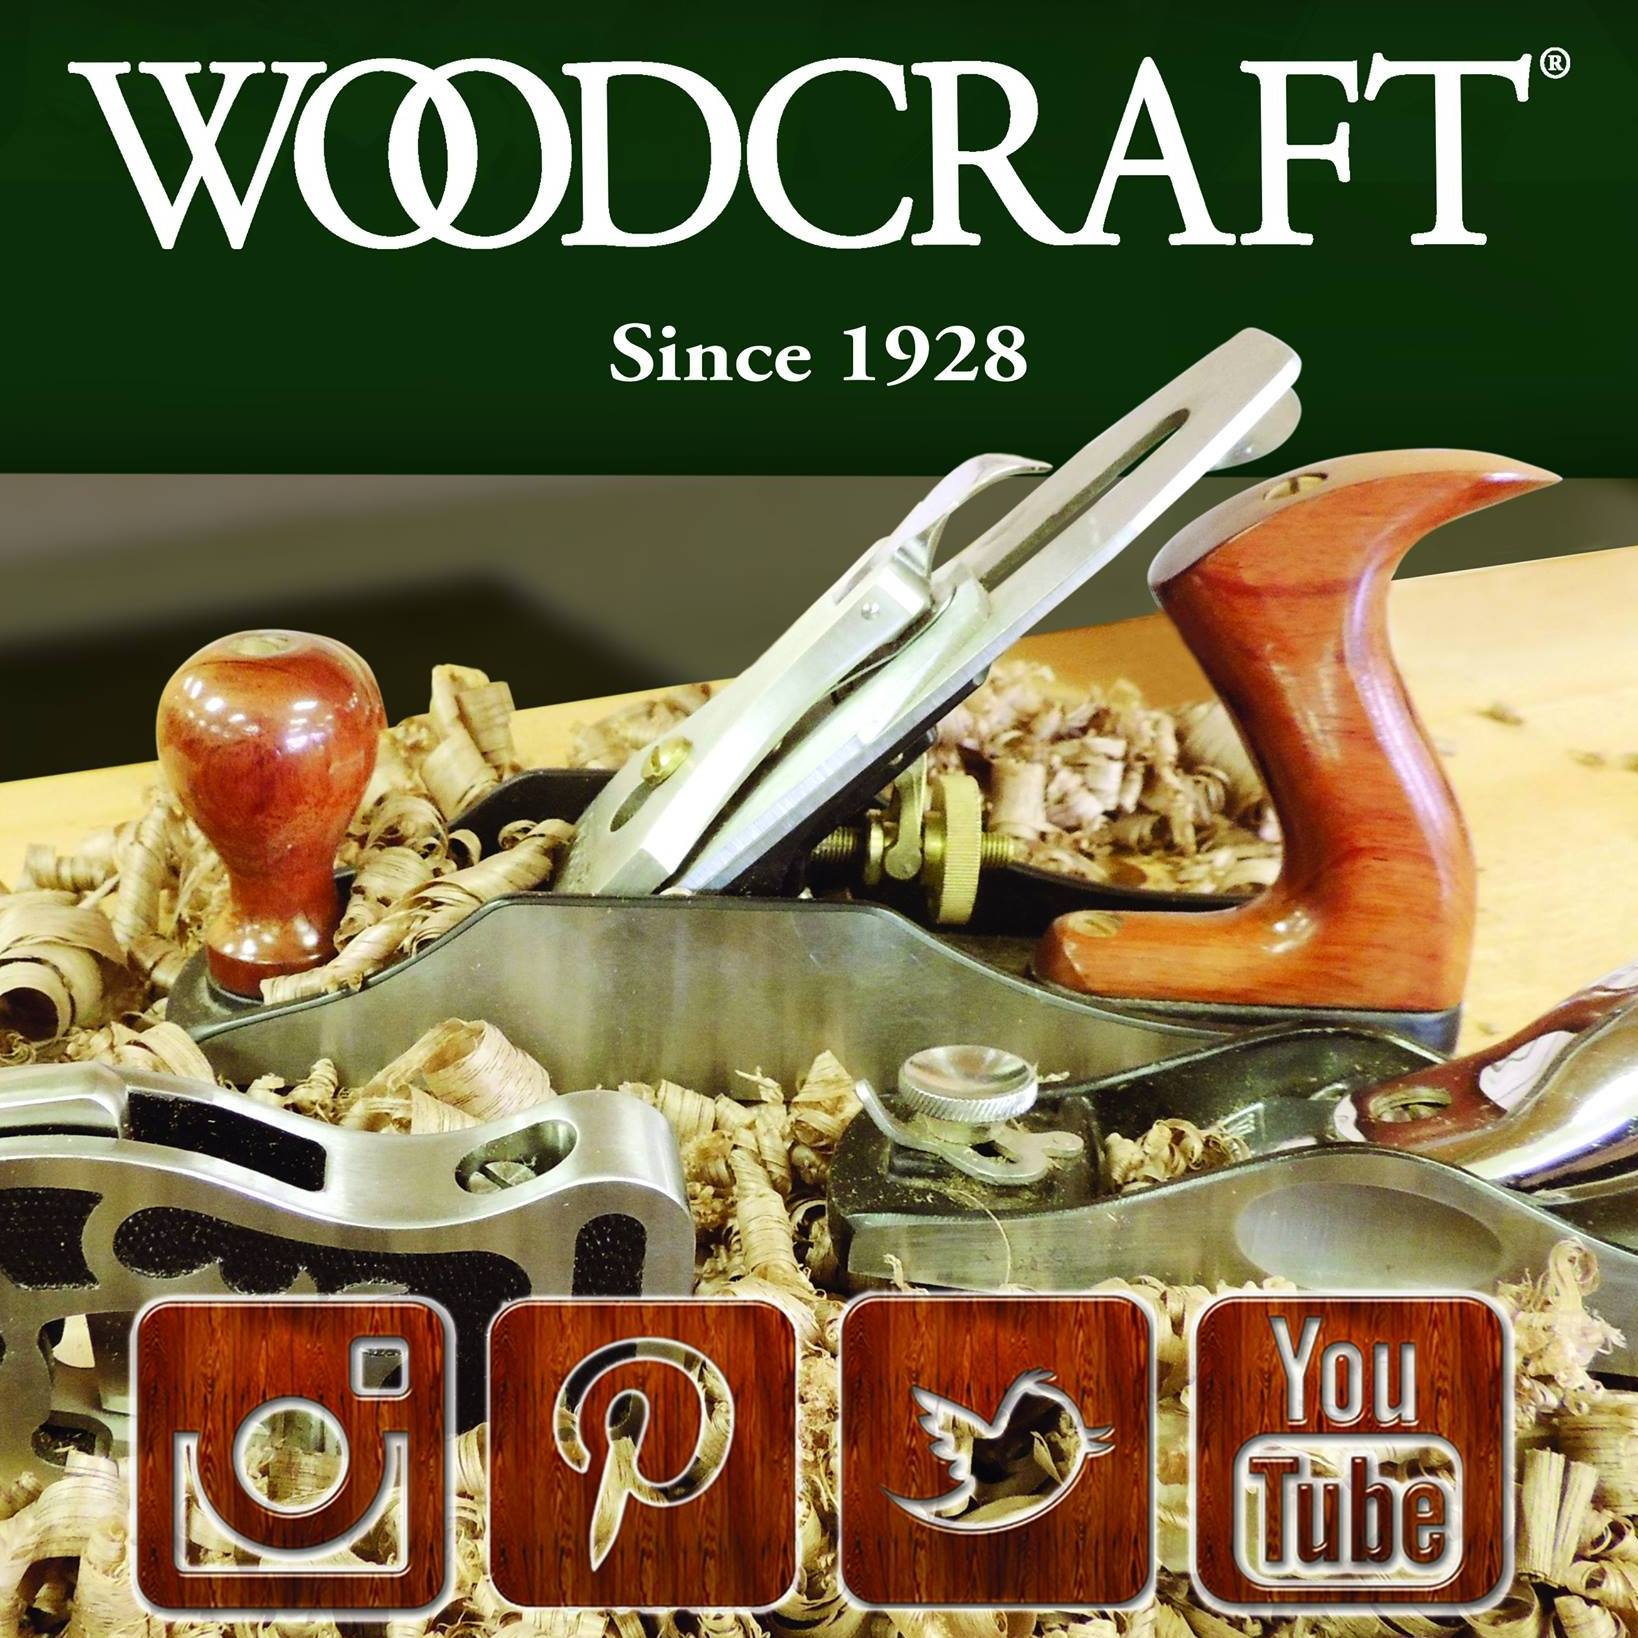 Your local Woodcraft